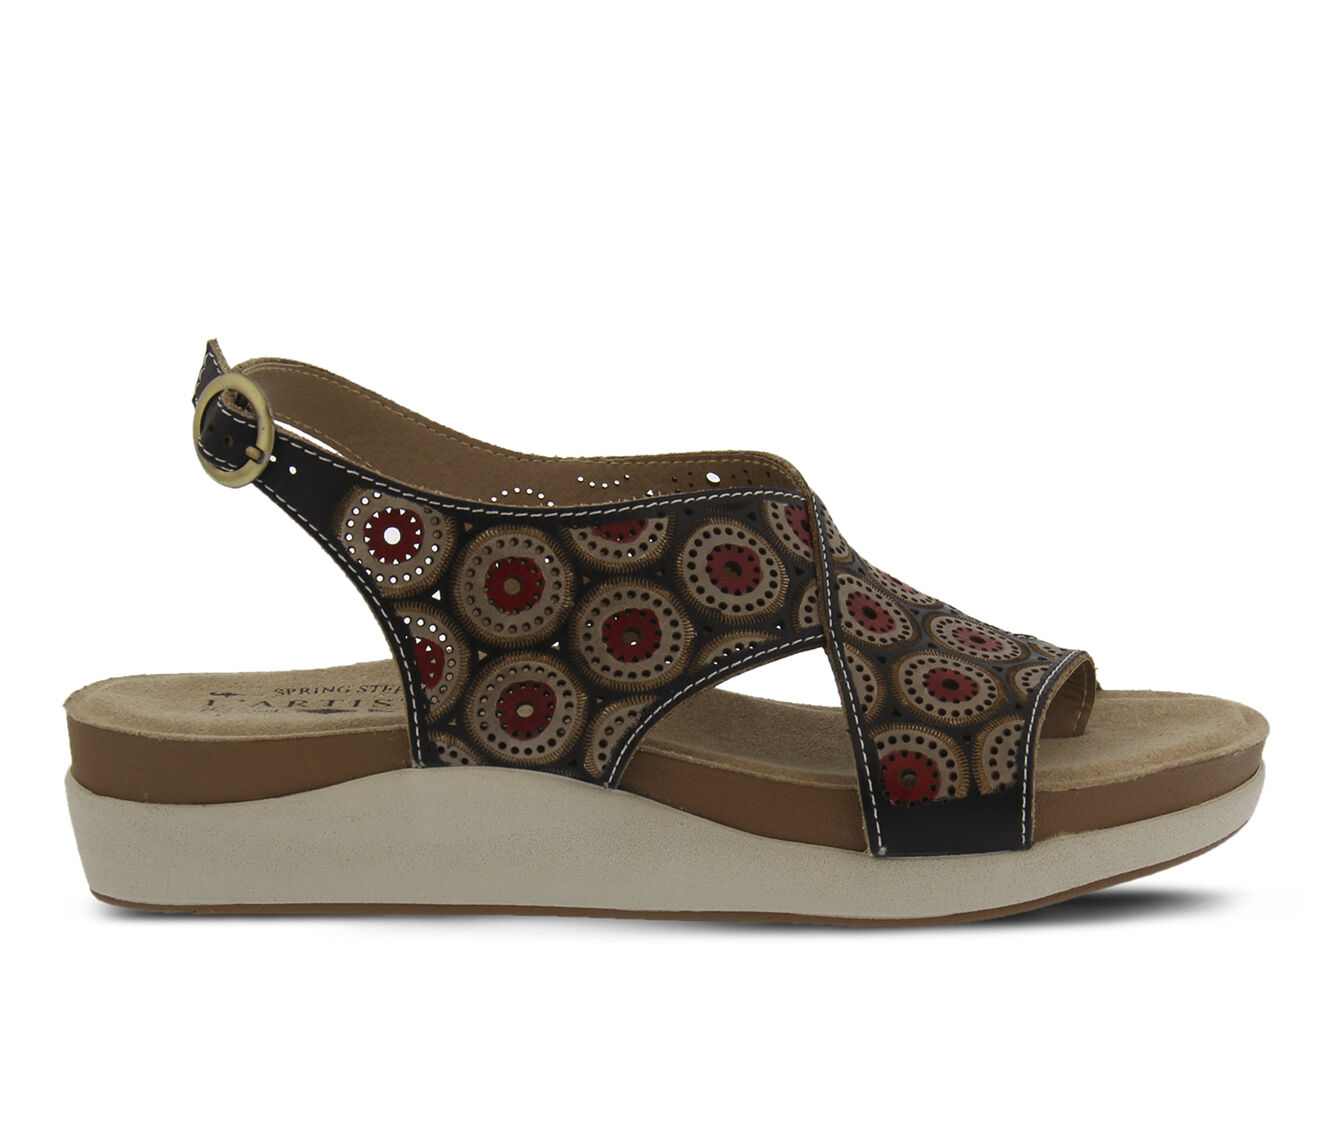 Women's L'ARTISTE Erice Sandals Black Multi